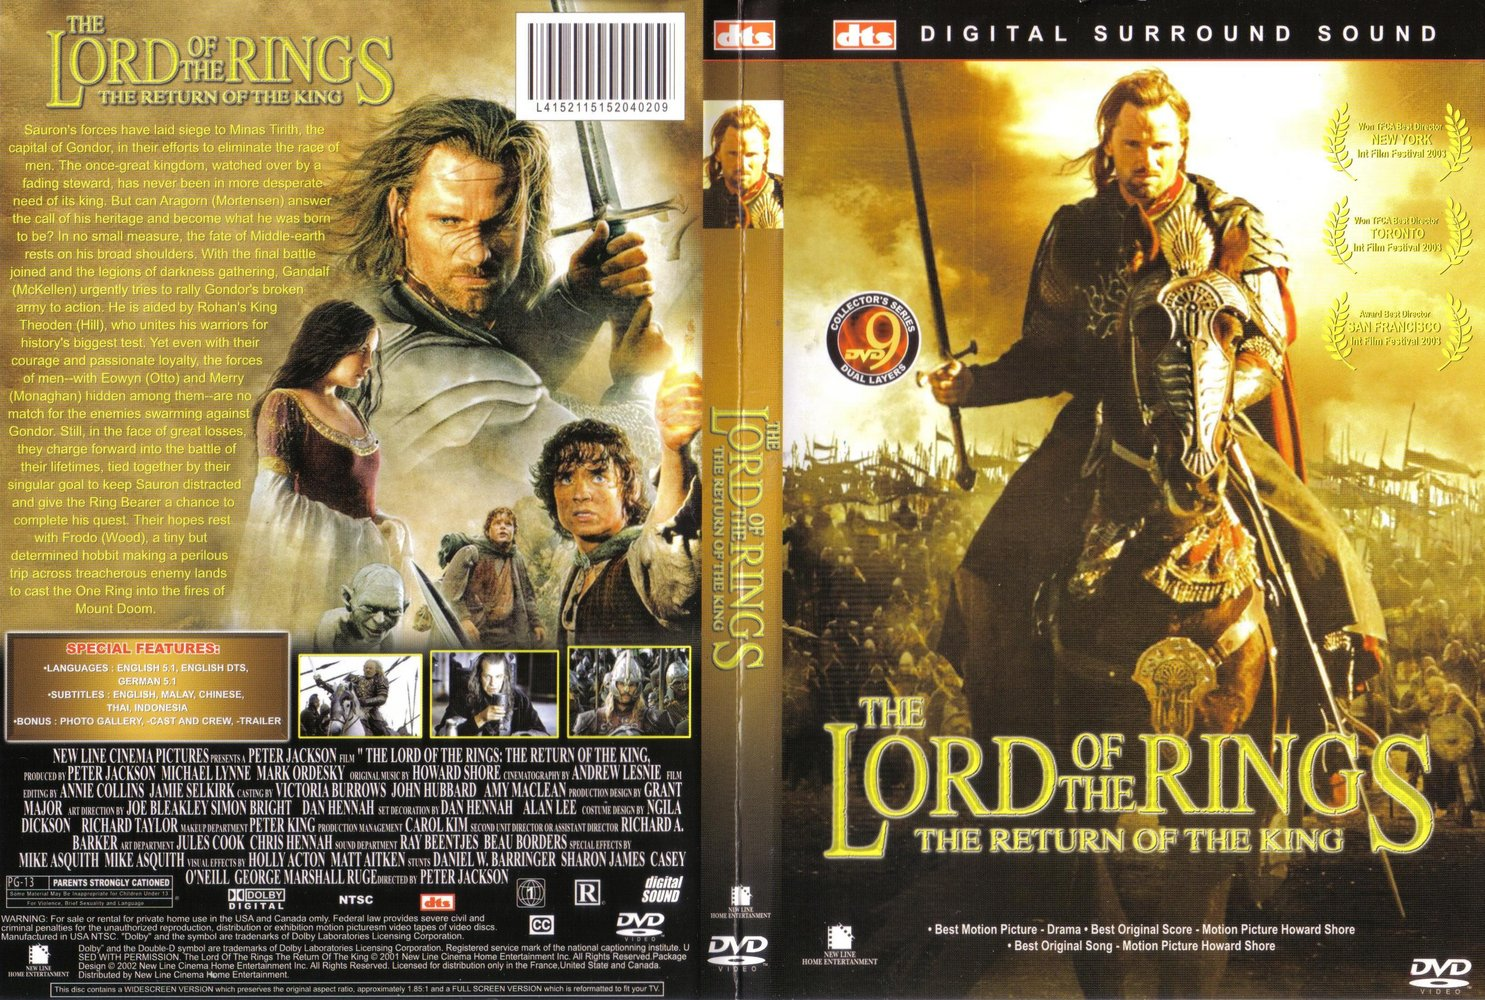 the lord of the rings the return of the king book report